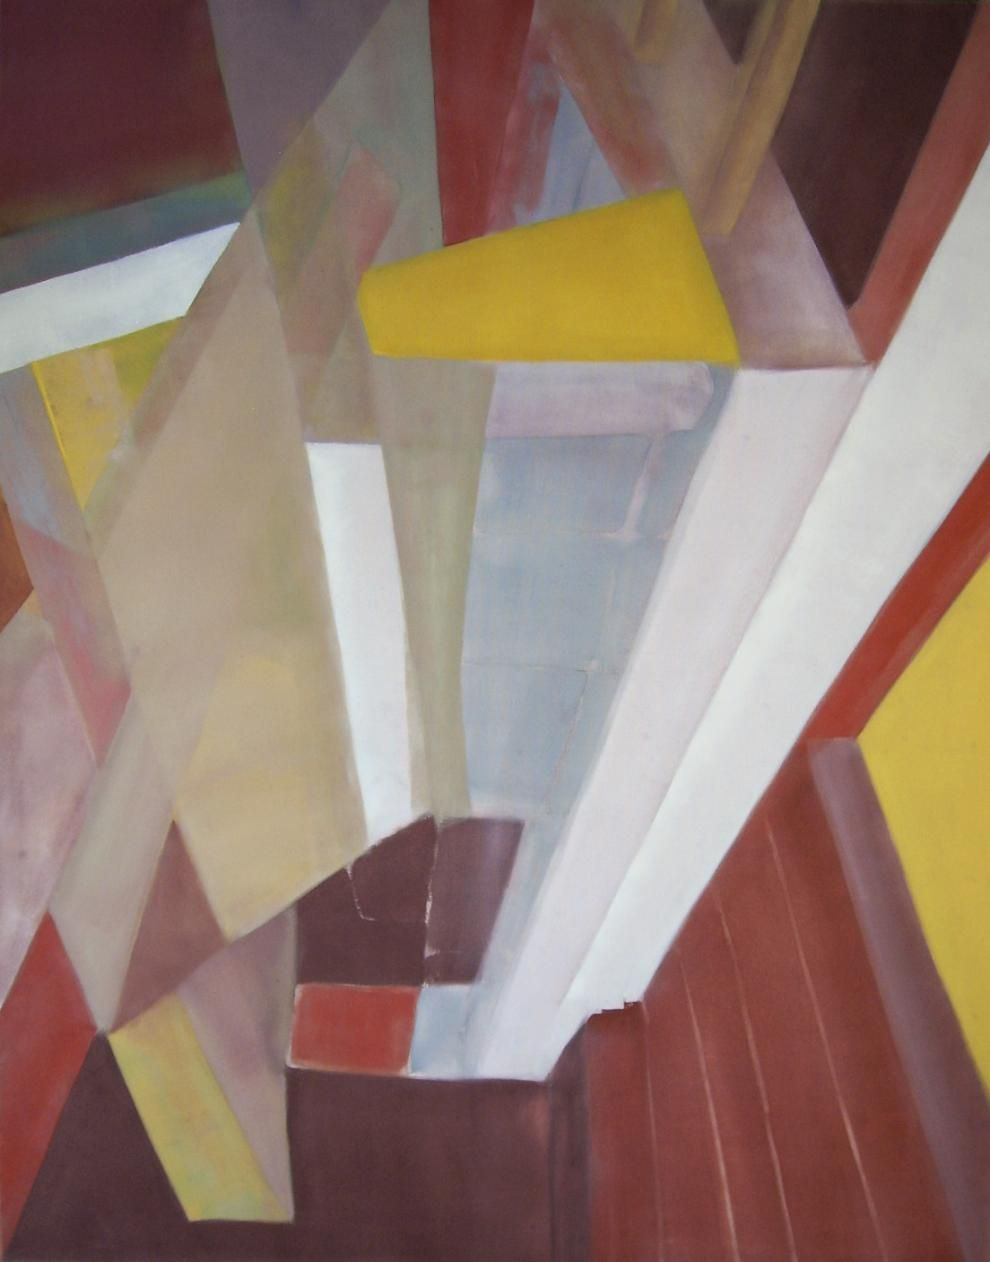 'Wooden Floor' / Oil on canvas / 31.50 in x 39.40 in / May 14, 2012